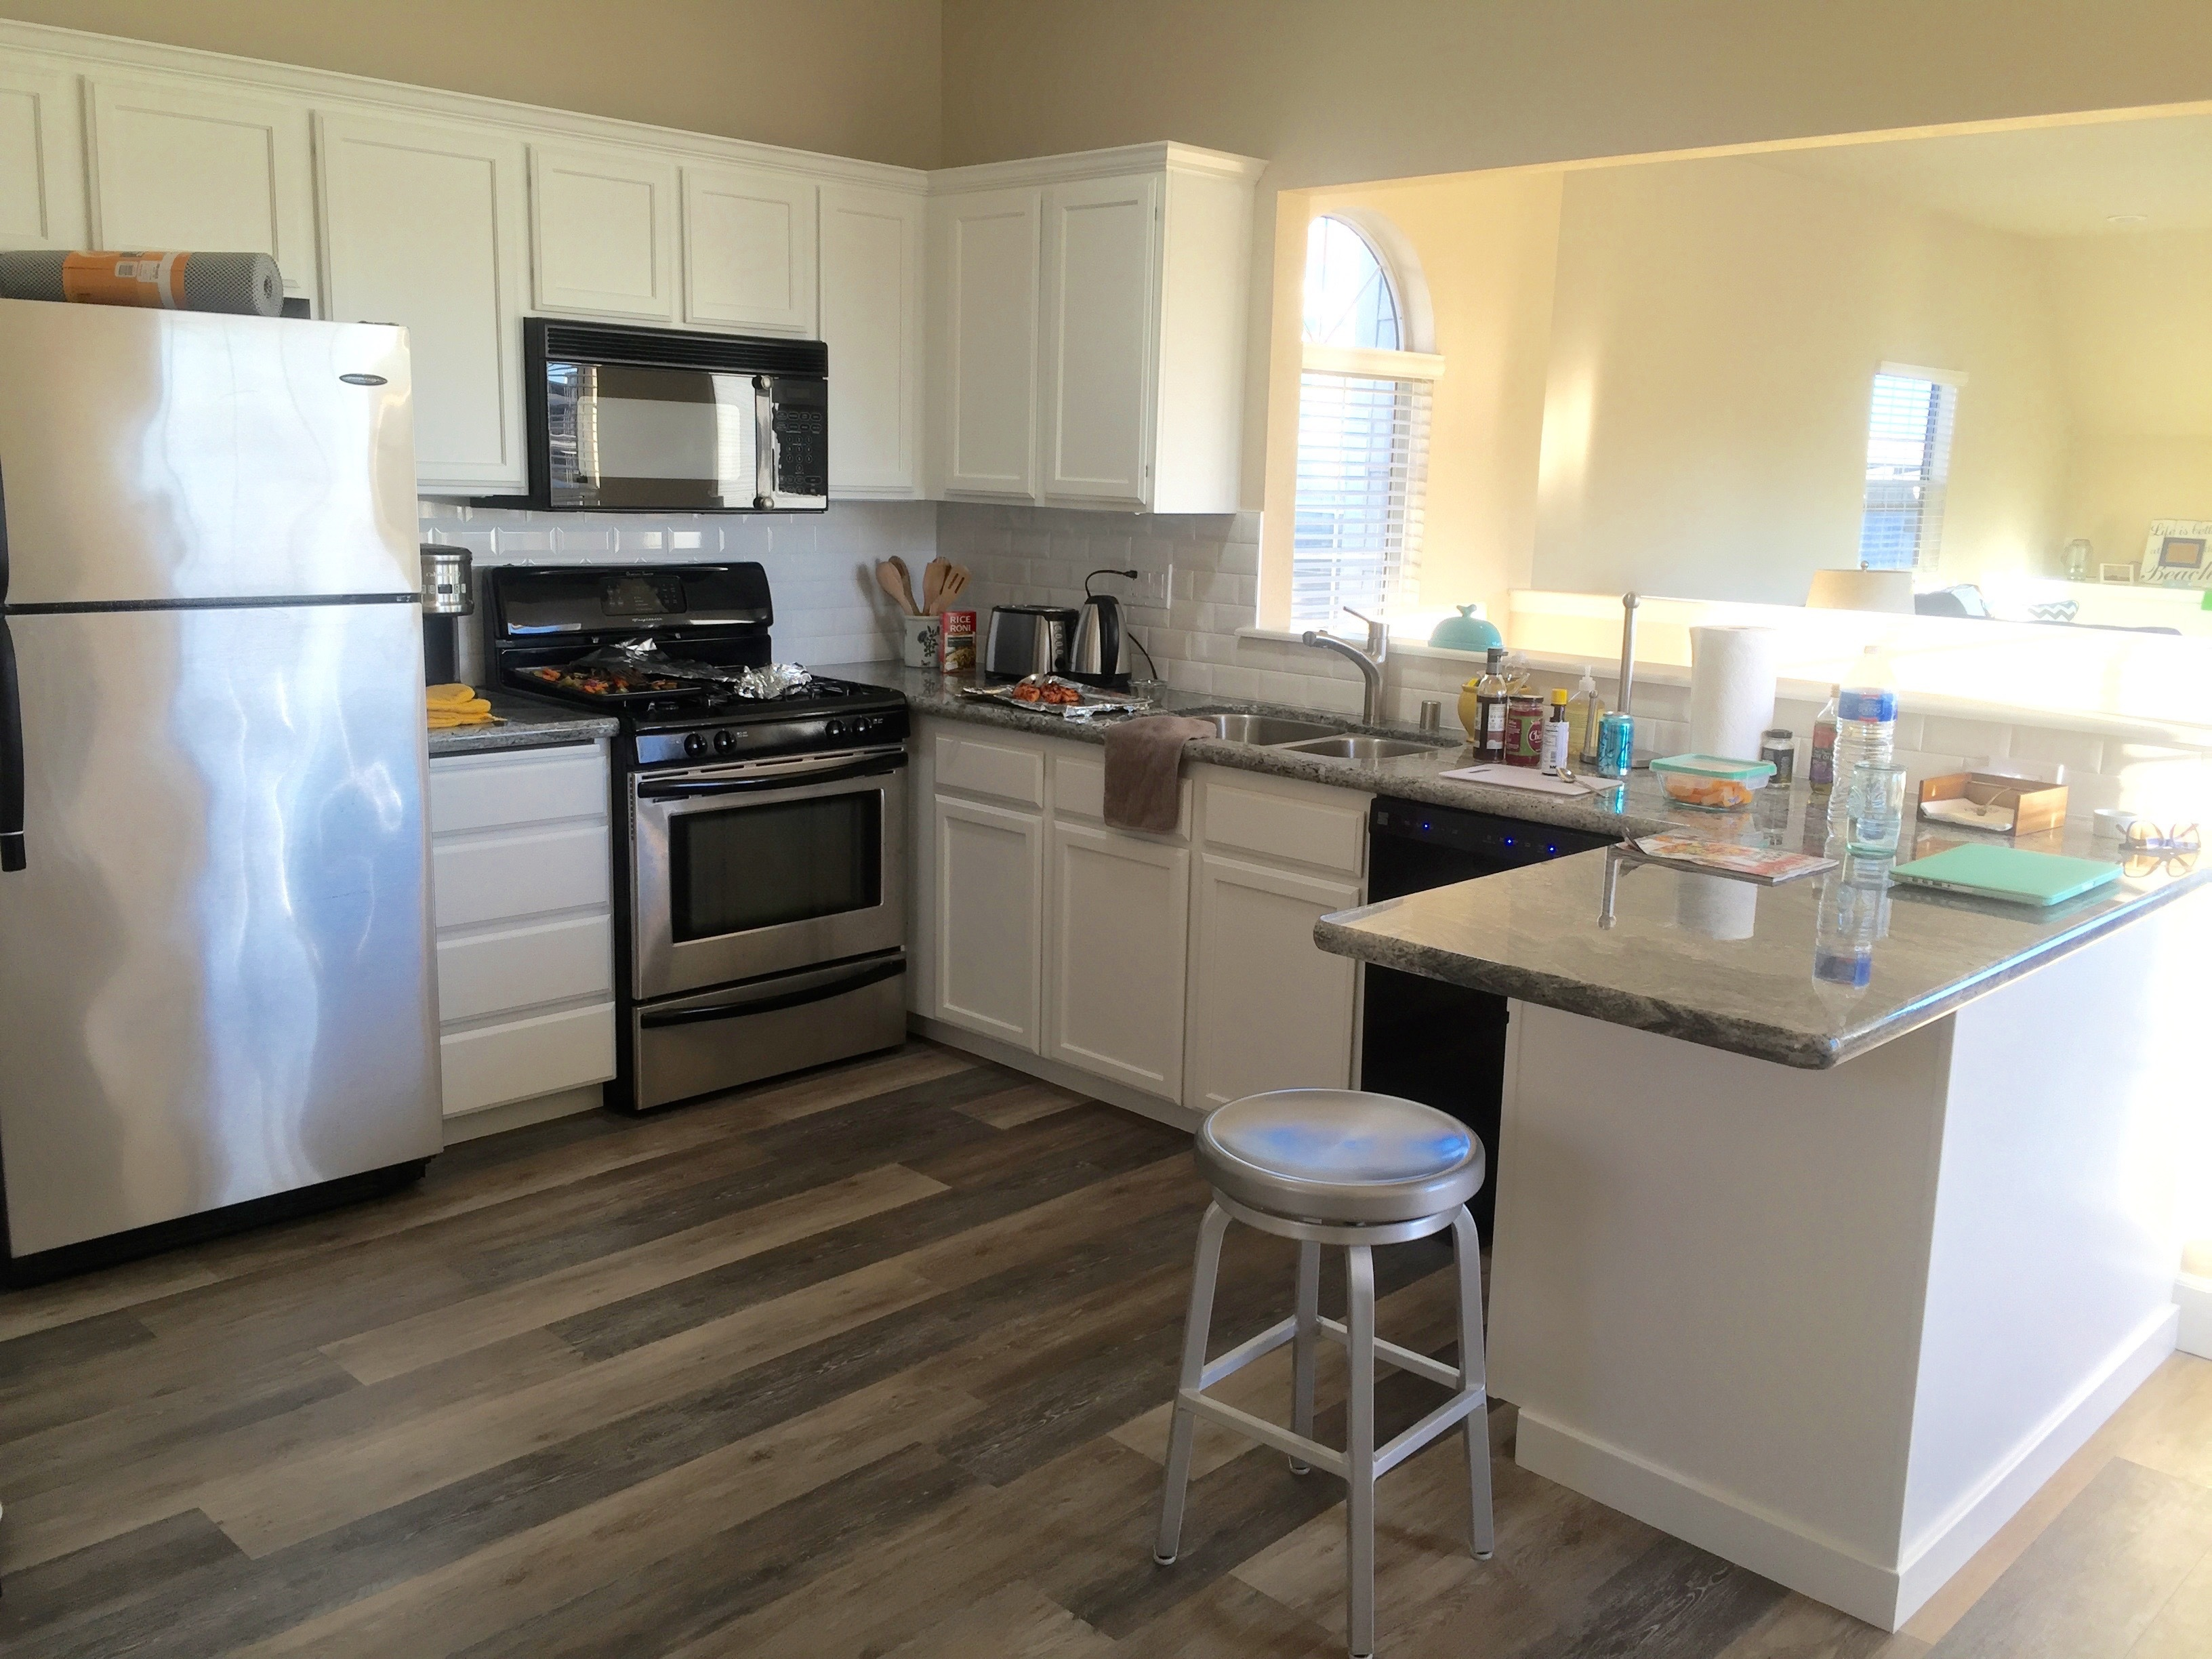 Home remodeling in cayucos ca take a look at this for Updated kitchen remodels